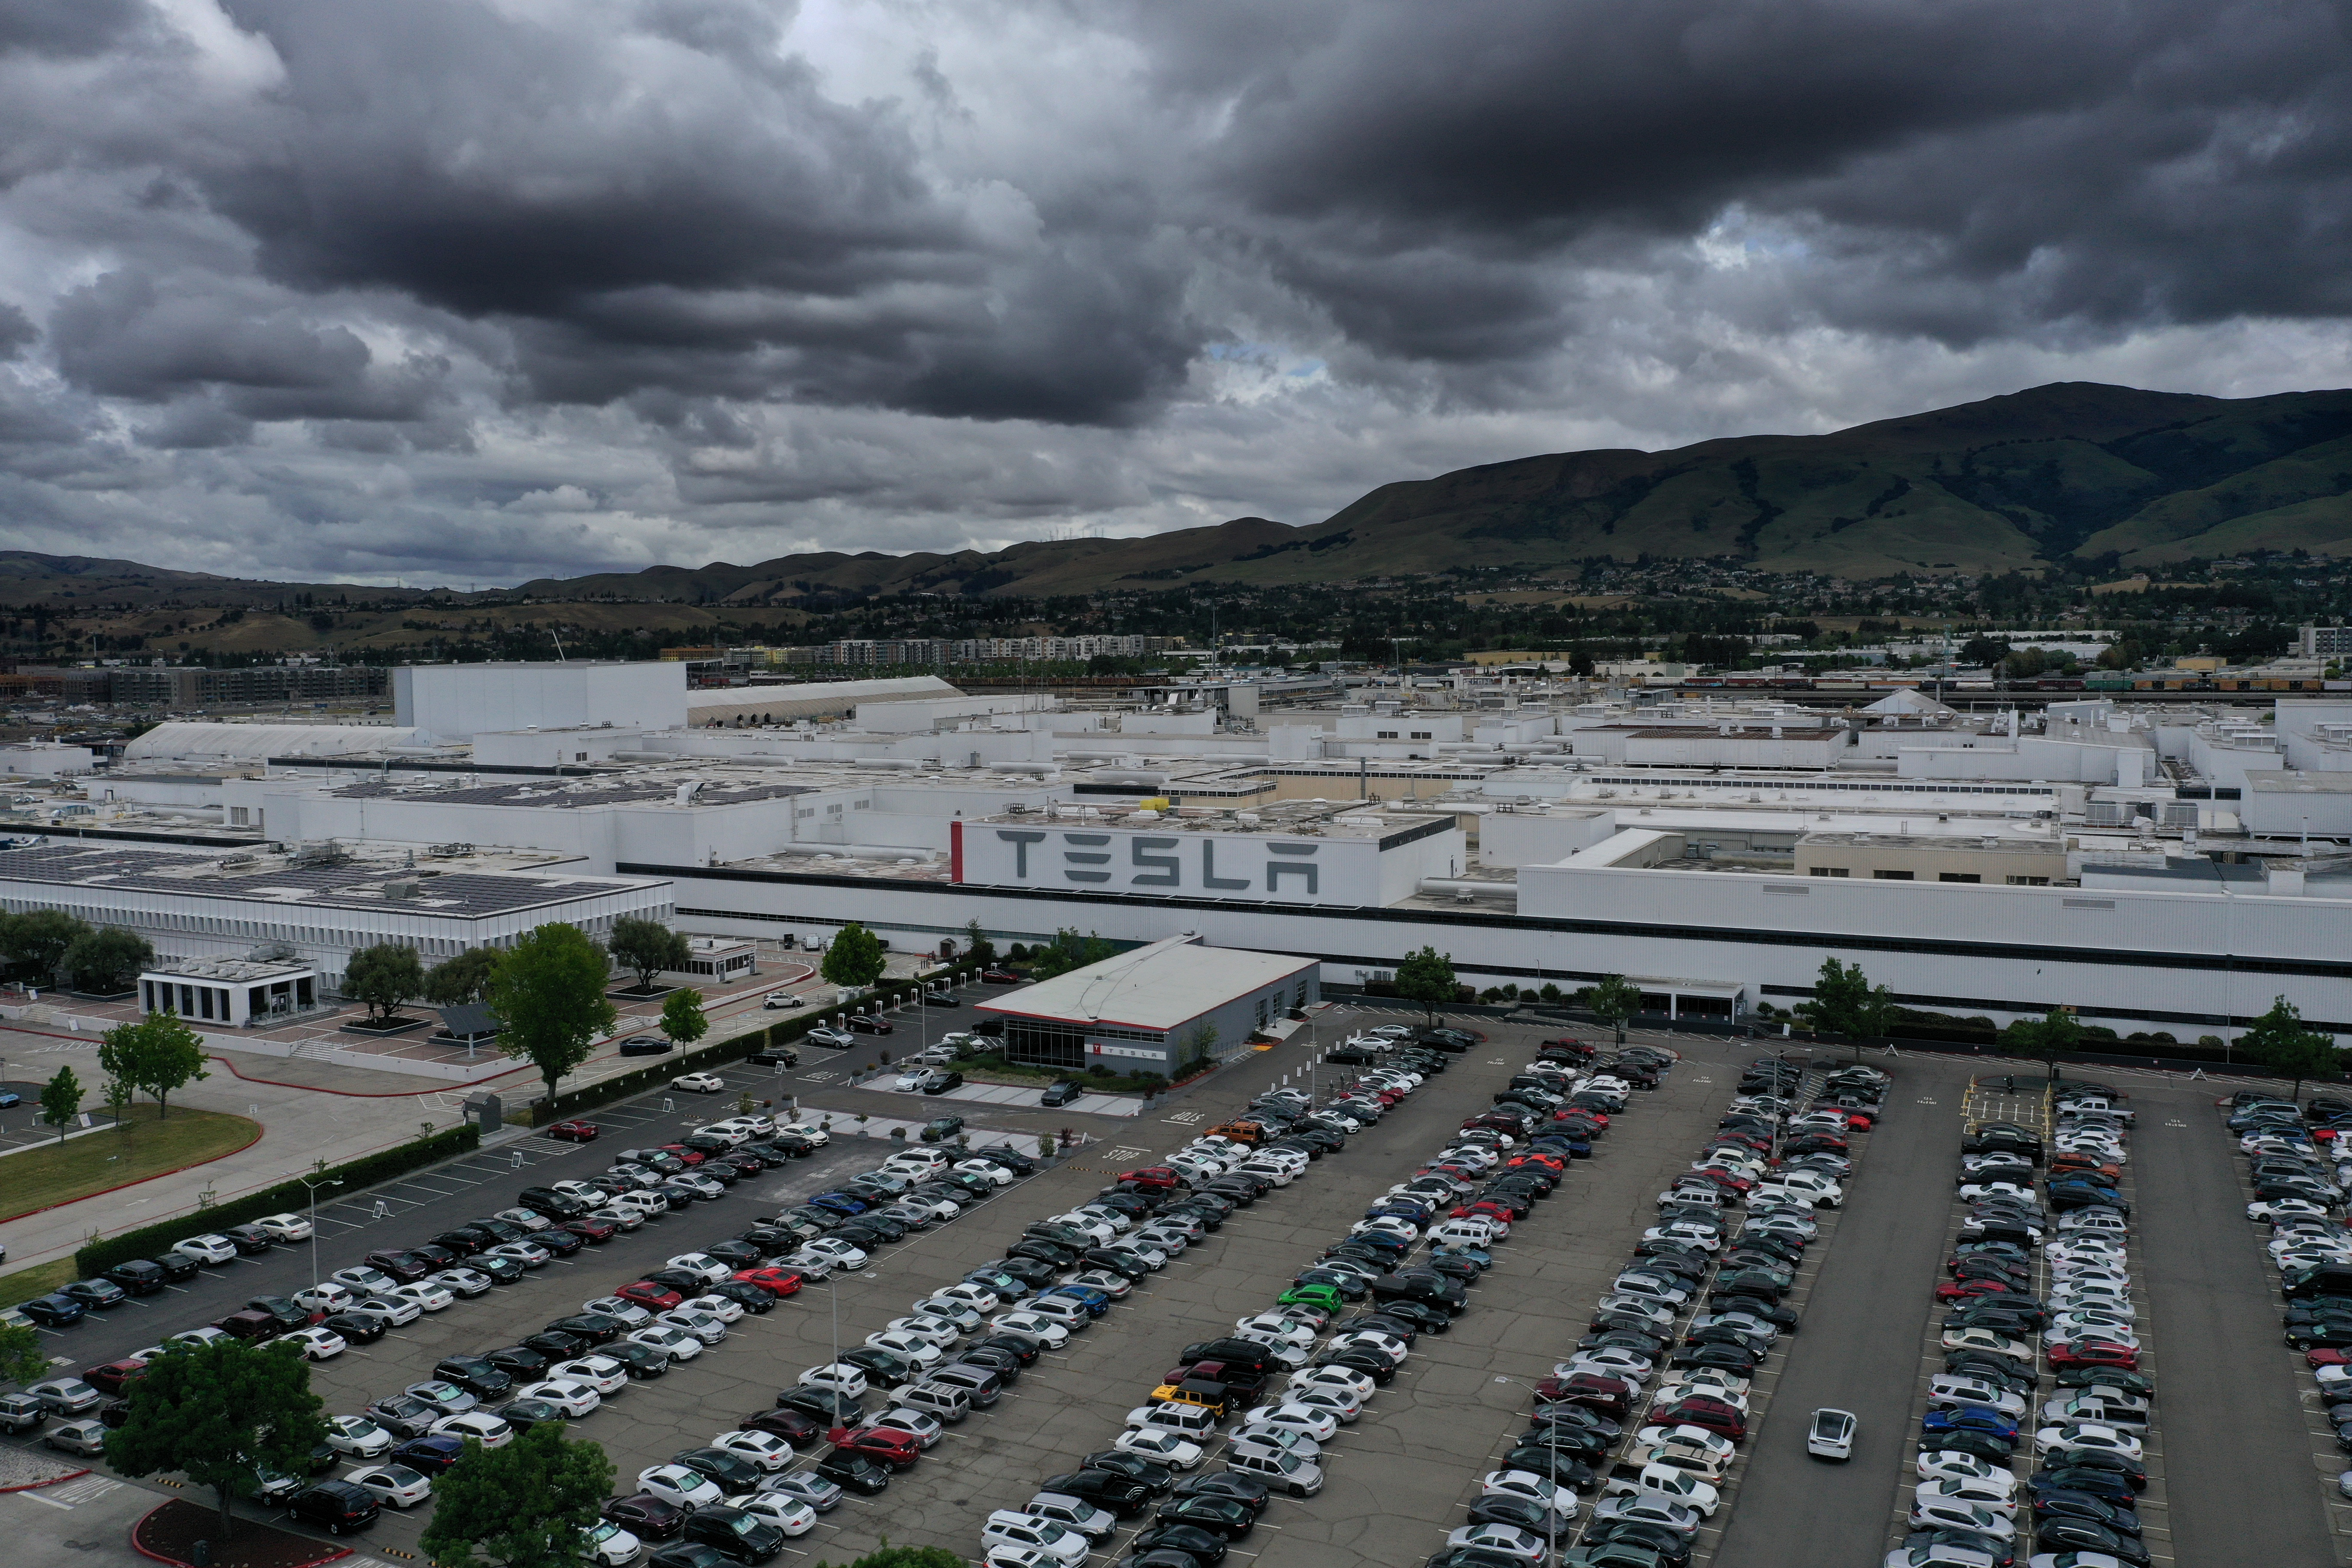 The Tesla factory in Fremont, California.